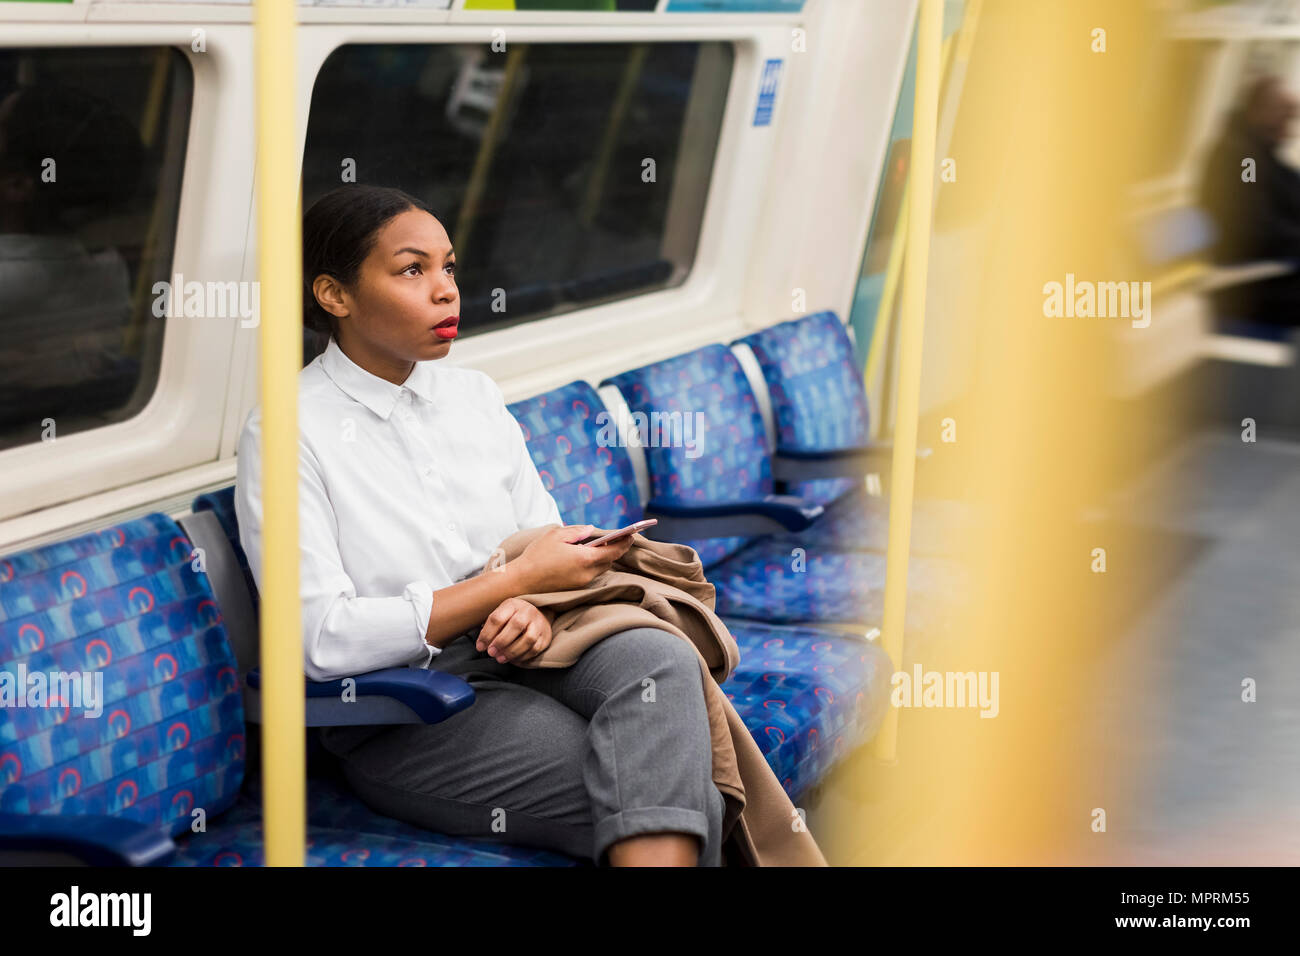 UK, London, businesswoman with cell phone sitting in underground train - Stock Image